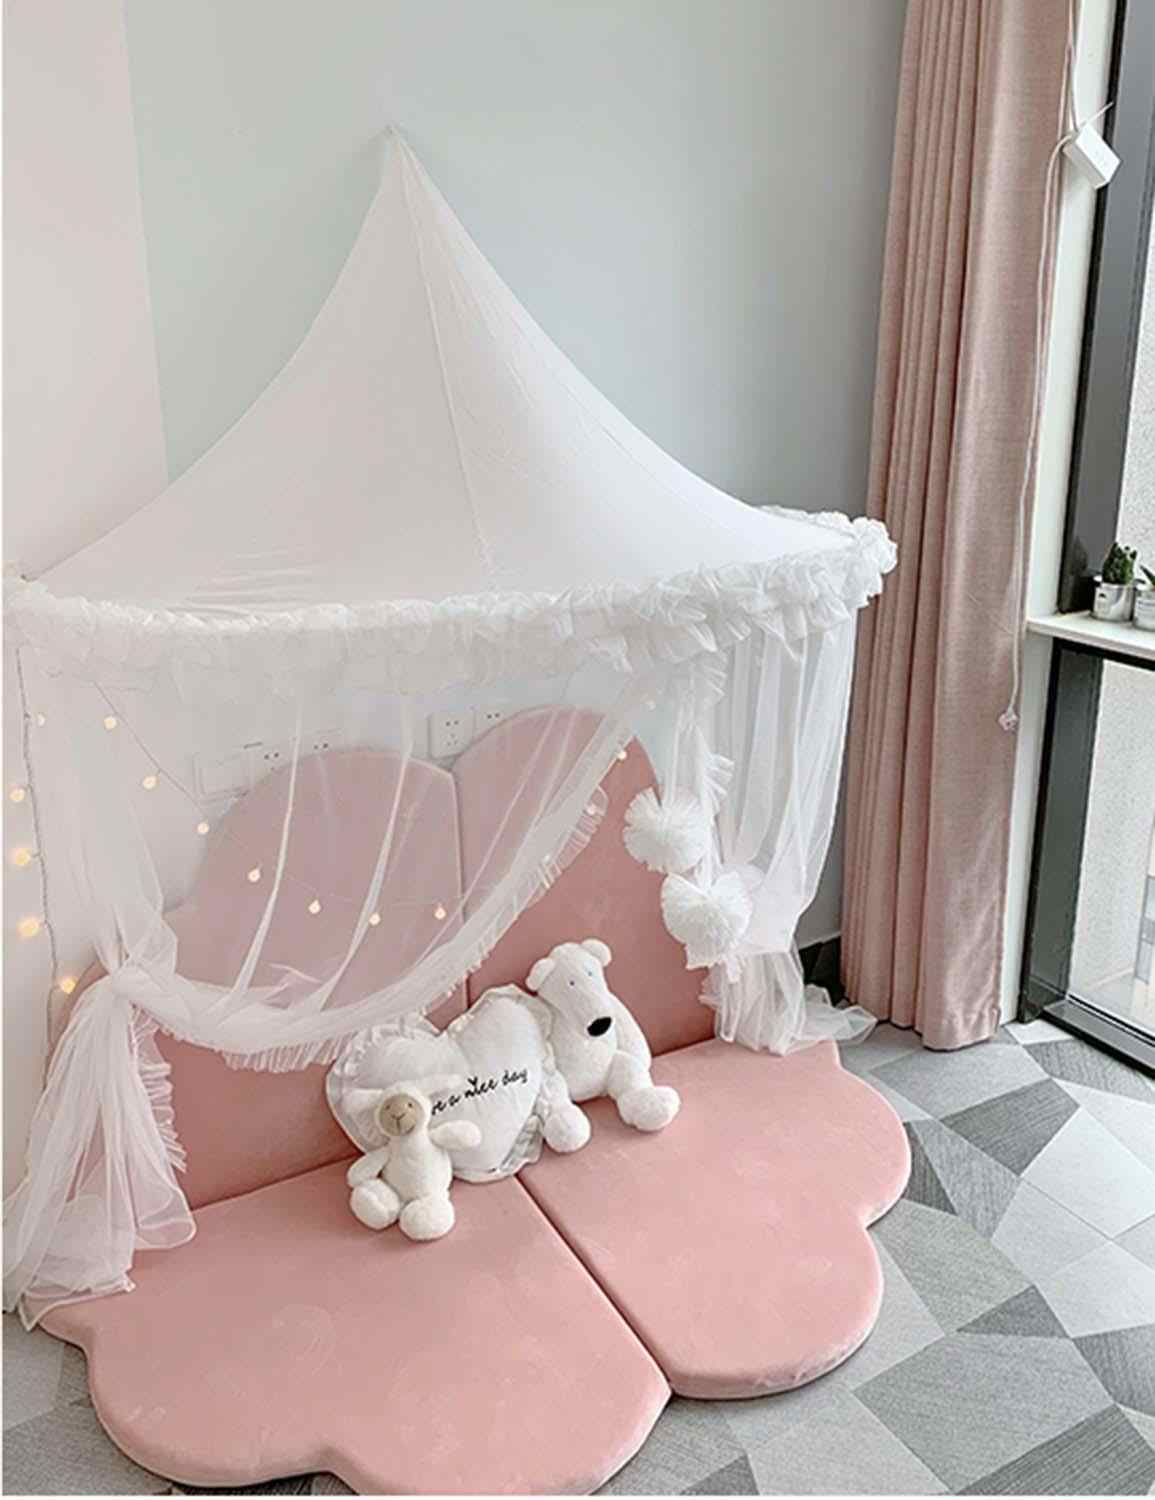 Baby Mosquito Net Crib Netting White Canopy Bed Curtains Toddler Kids Play Tent House Baby Girls Bedroom Decor Bed Tent Children Crib Netting Aliexpress